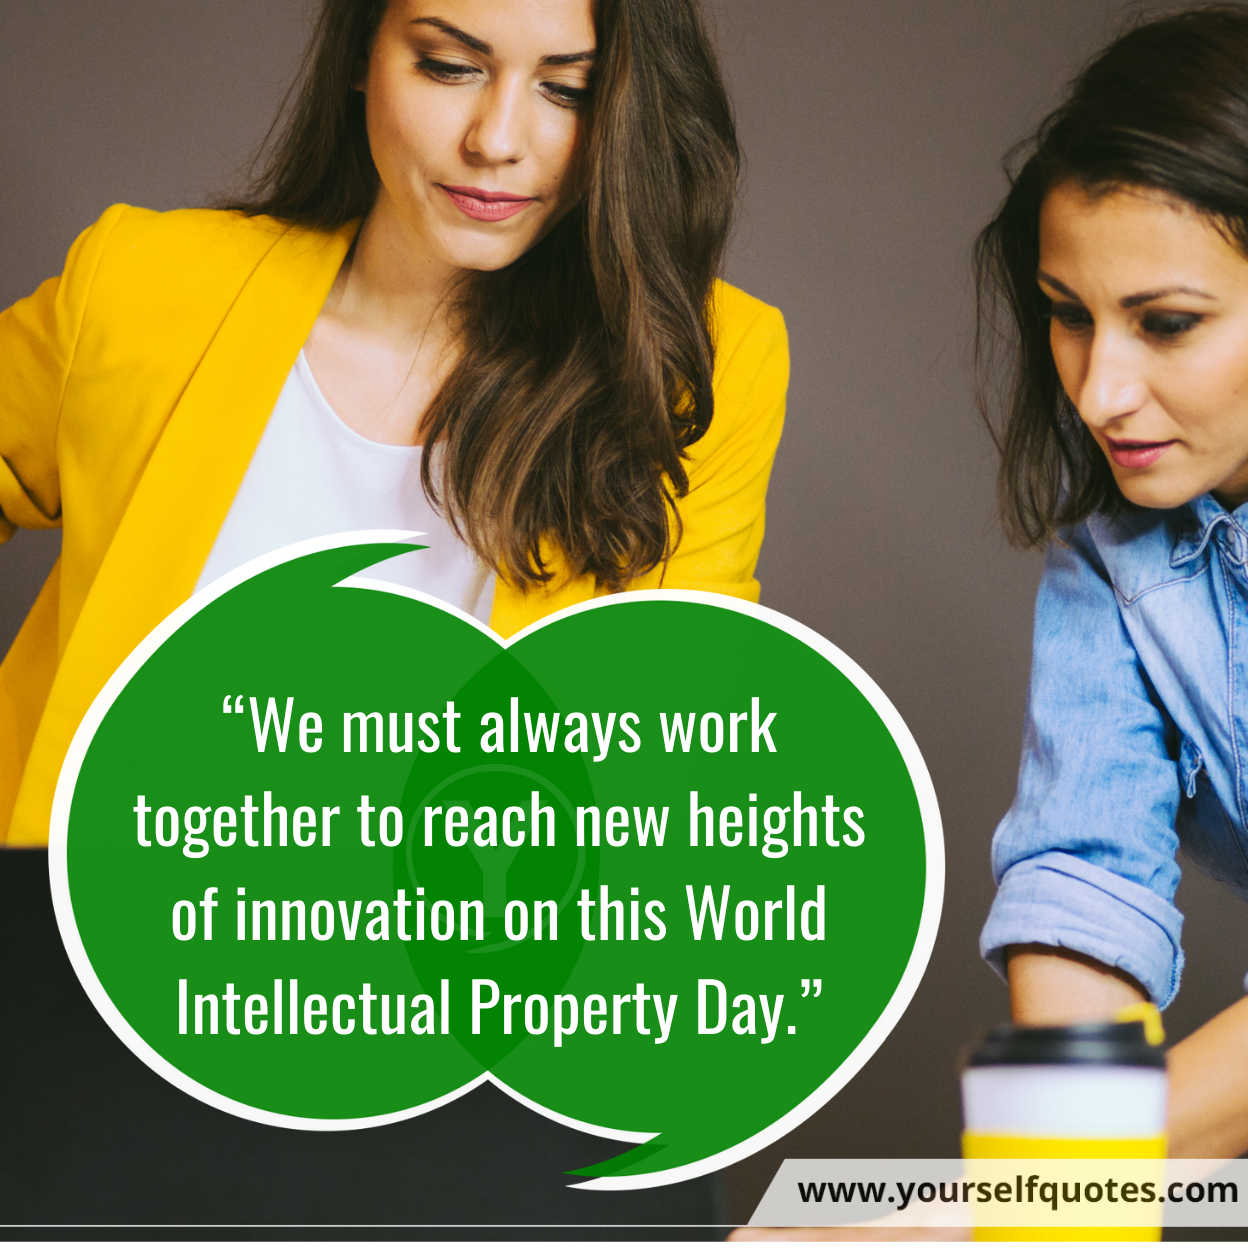 """""""We must always work together to reach new heights of innovation on this World Intellectual Property Day."""""""